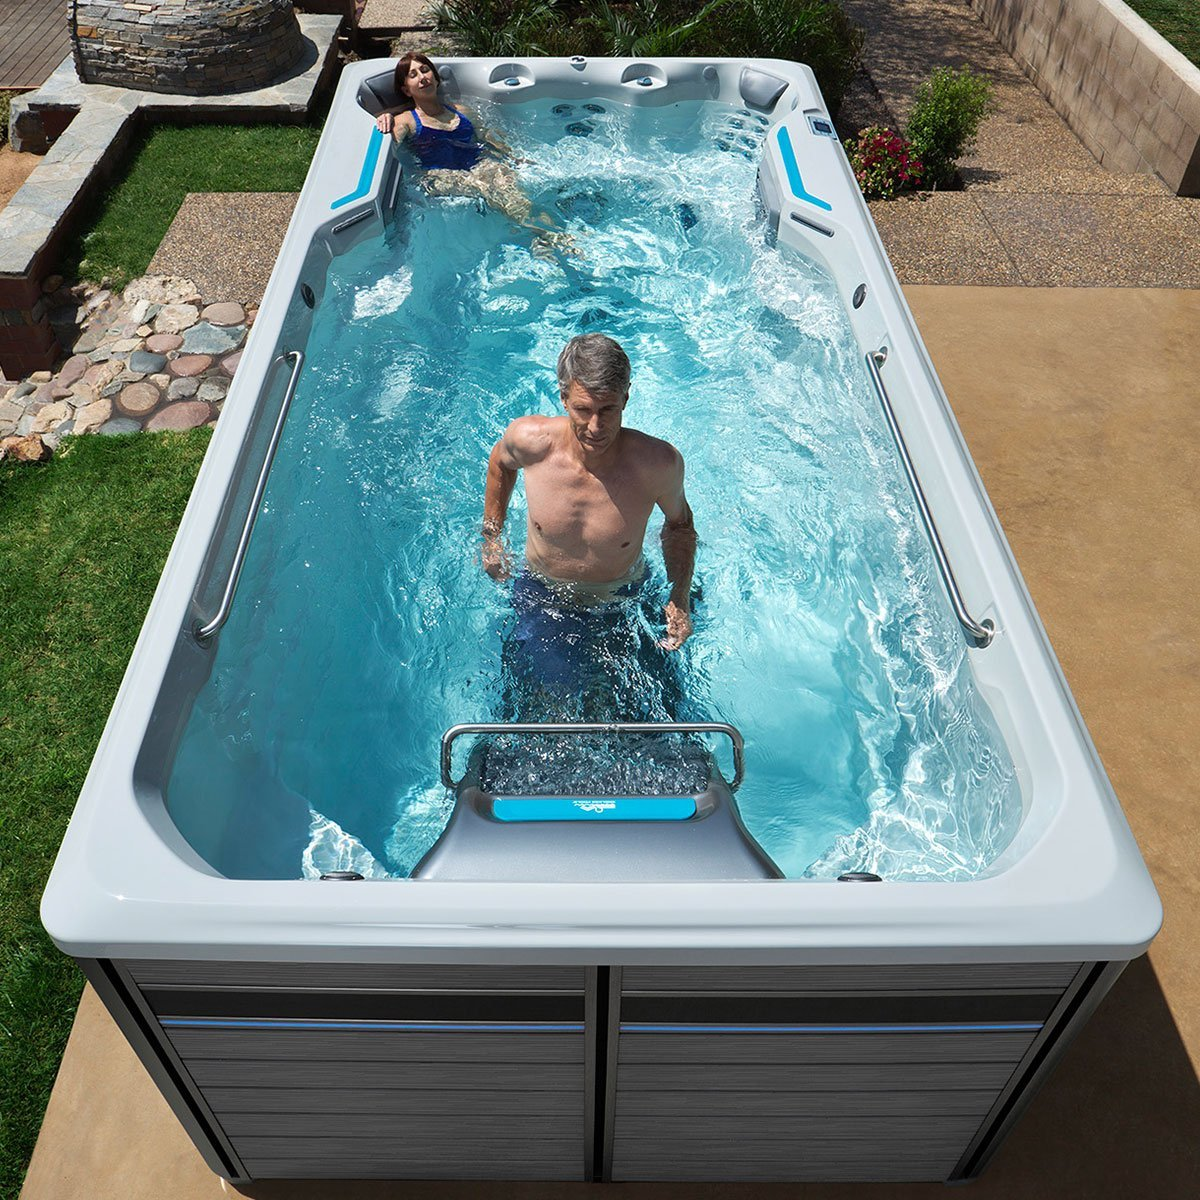 E700 Endless Pools® Fitness Systems - Maximum Comfort Pool & Spa